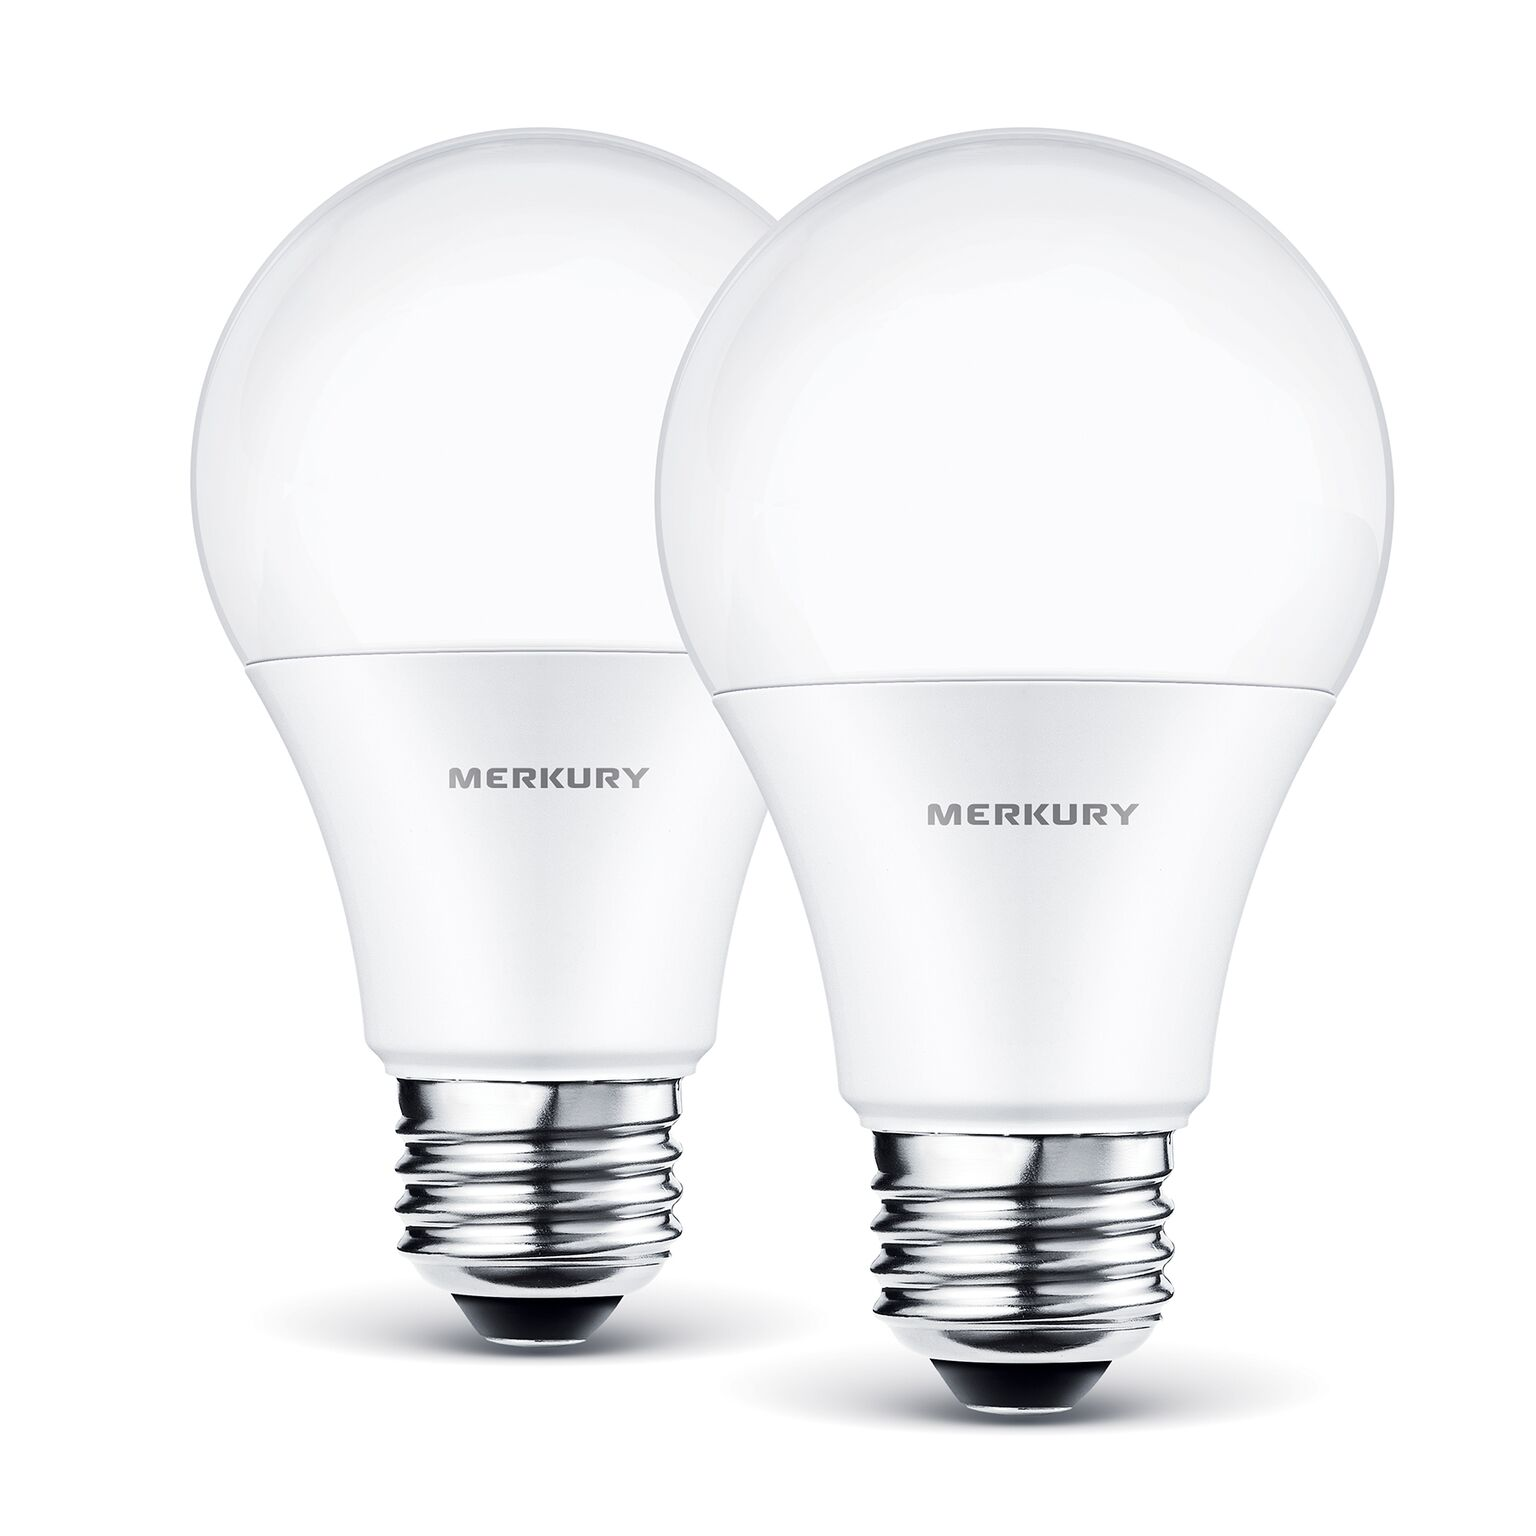 Merkury Innovations A19 Smart Light Bulb, 60W Dimmable White LED, 2-Pack